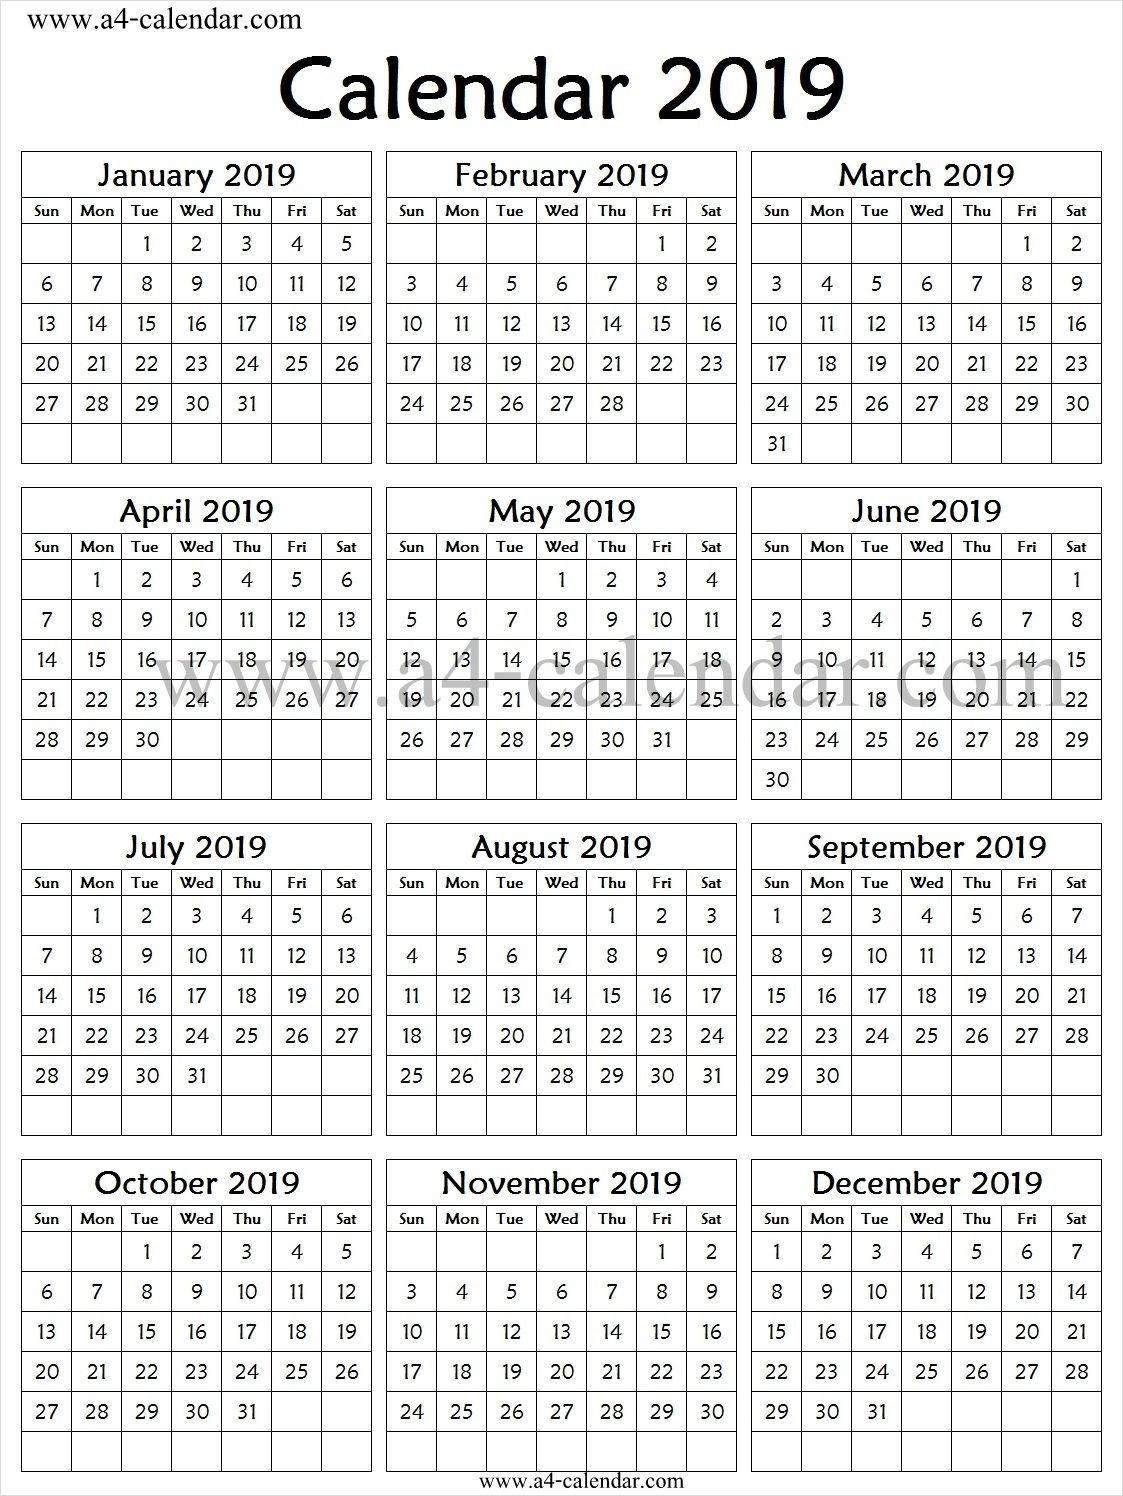 2019 Calendar One Page Vertical | 2019 Calendar, First Page